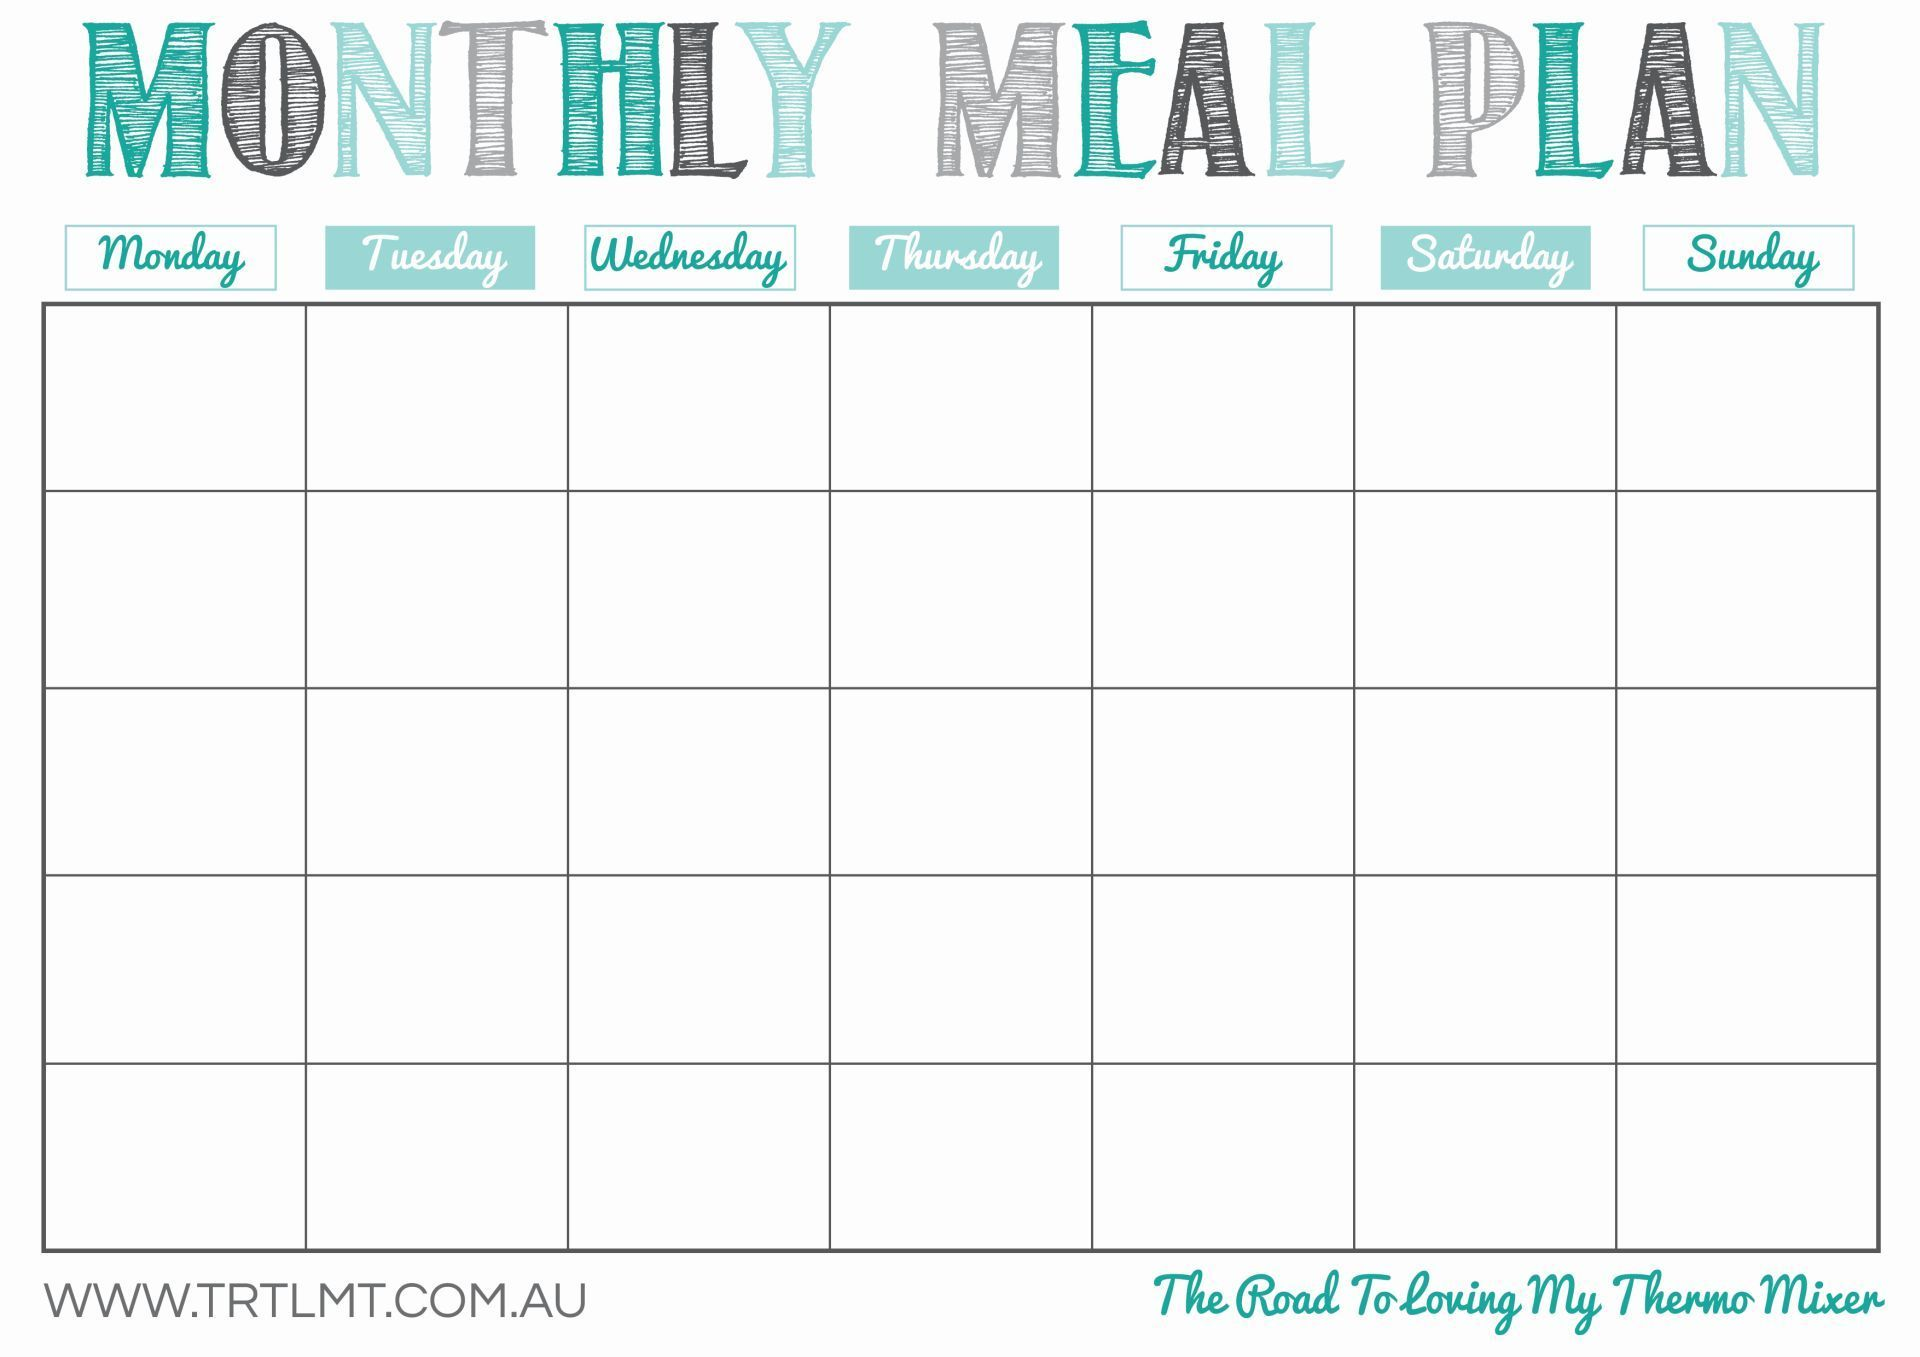 Pin By Diana Silvers Reiter On Recipes Pinterest Meal Planner